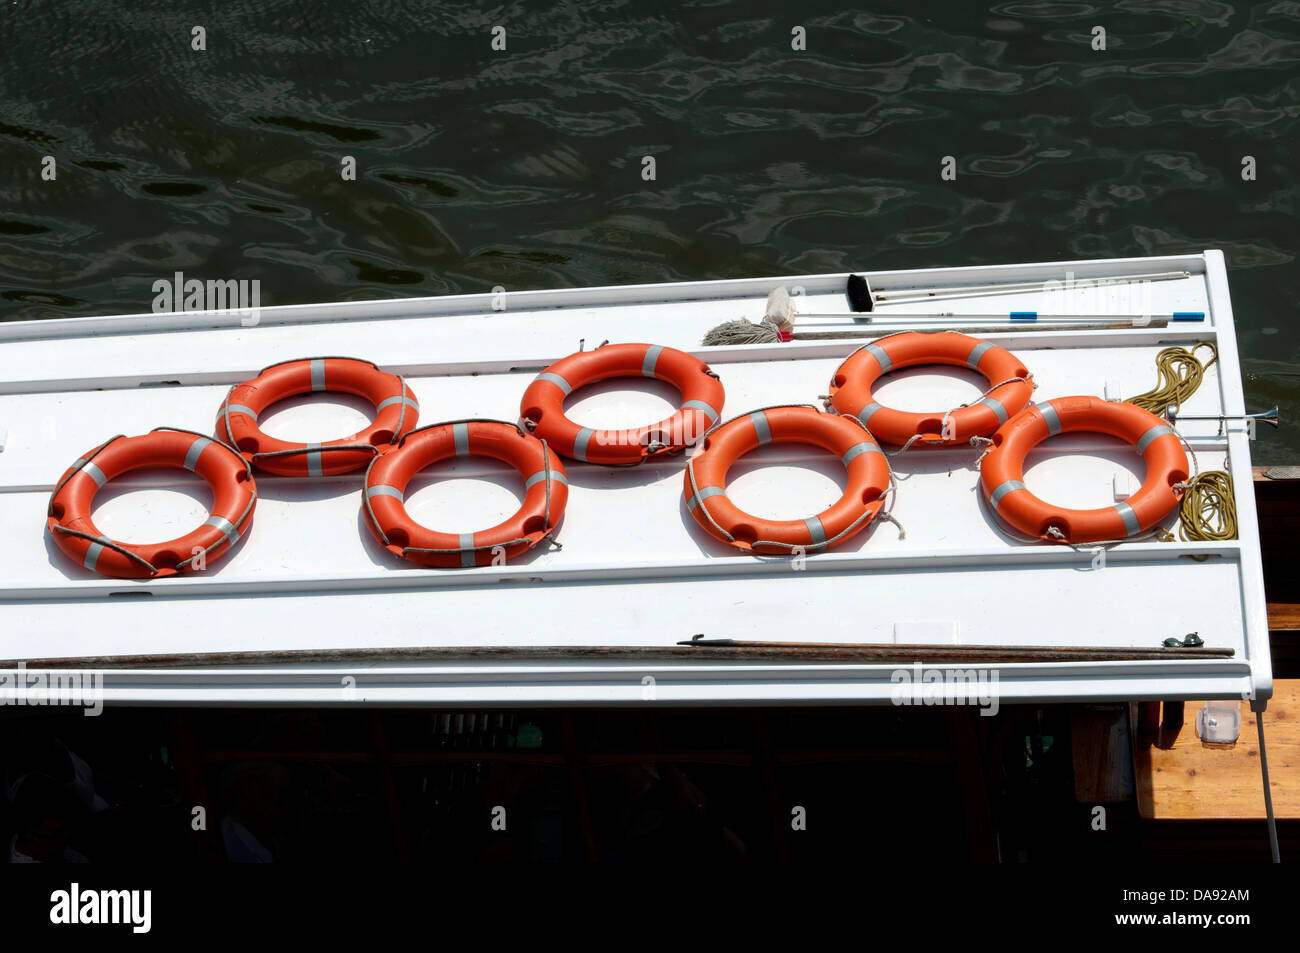 Life belts on a trip boat, Stratford-upon-Avon, UK - Stock Image